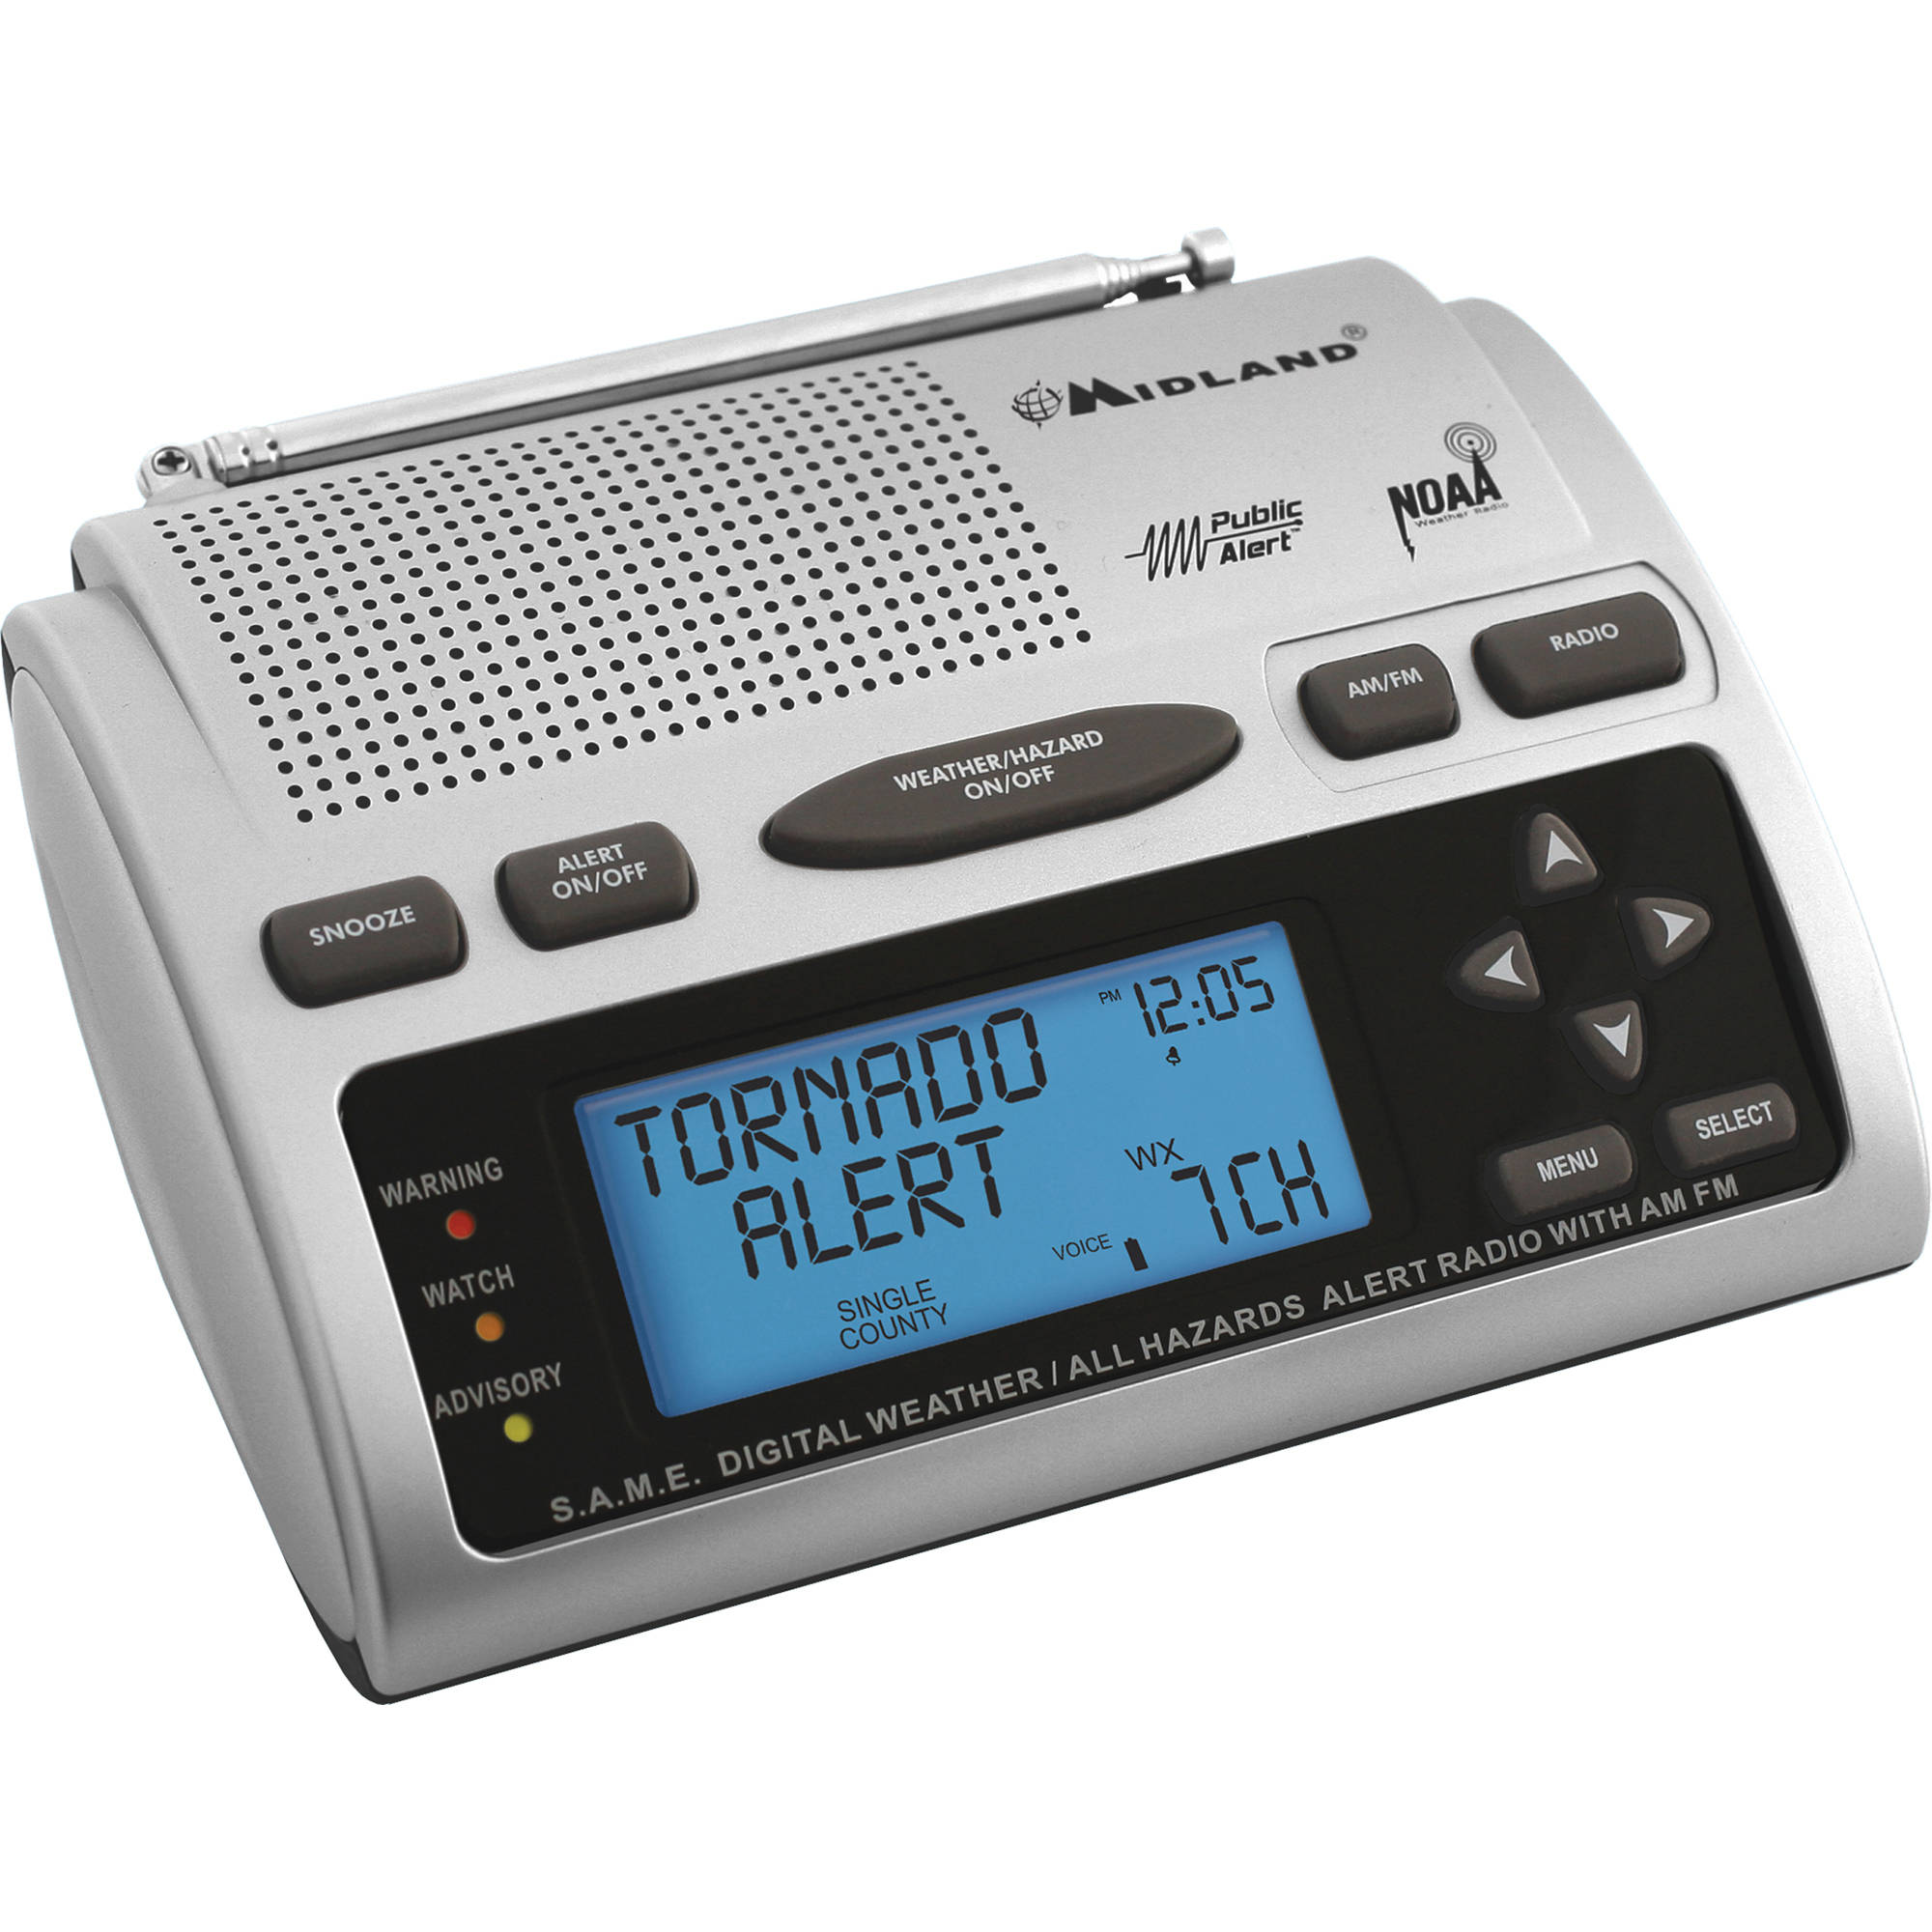 amazon am fm radios with Midland Wr300mid Wr 300 S A M E Weather on B003XQFZ1C furthermore Radioshack Am Fm Stereo Headset Radio 3 as well B01BY7YIOQ in addition GRUNDIG SHORTWAVE RADIO S350DL NEW CONDITION 26566778 in addition Tecsun Pl 880.